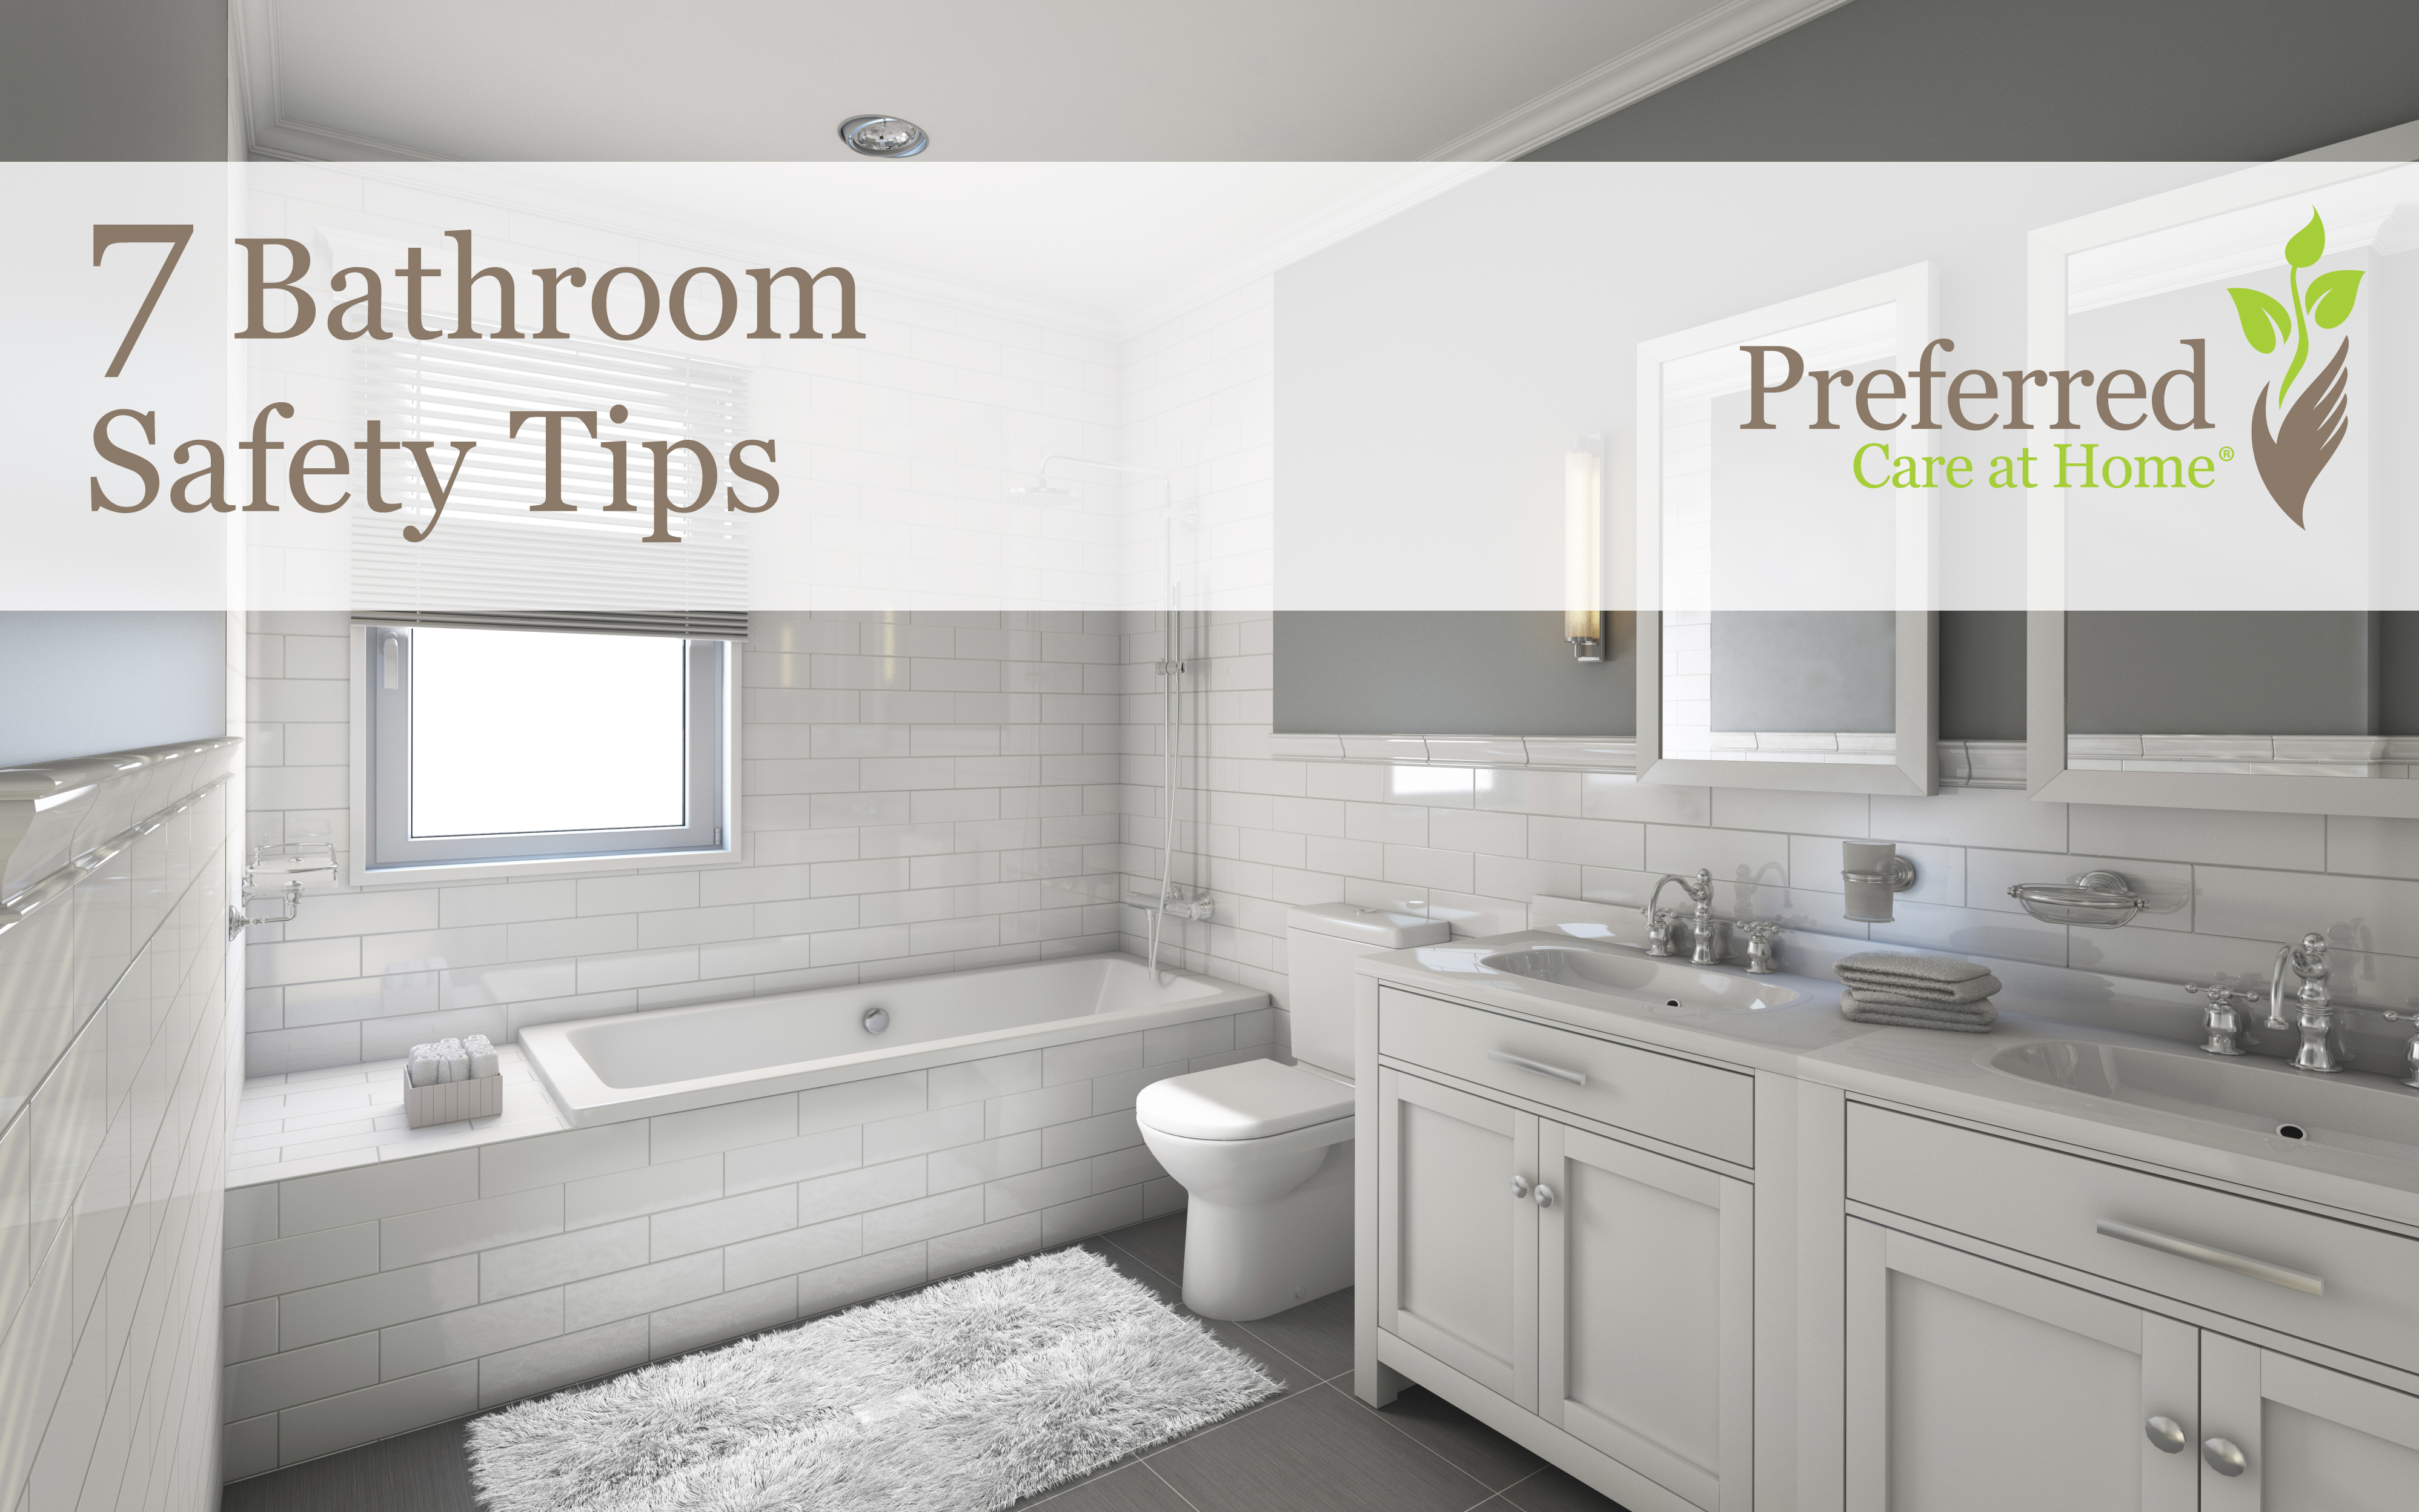 Home Safety: 7 Bathroom Safety Tips